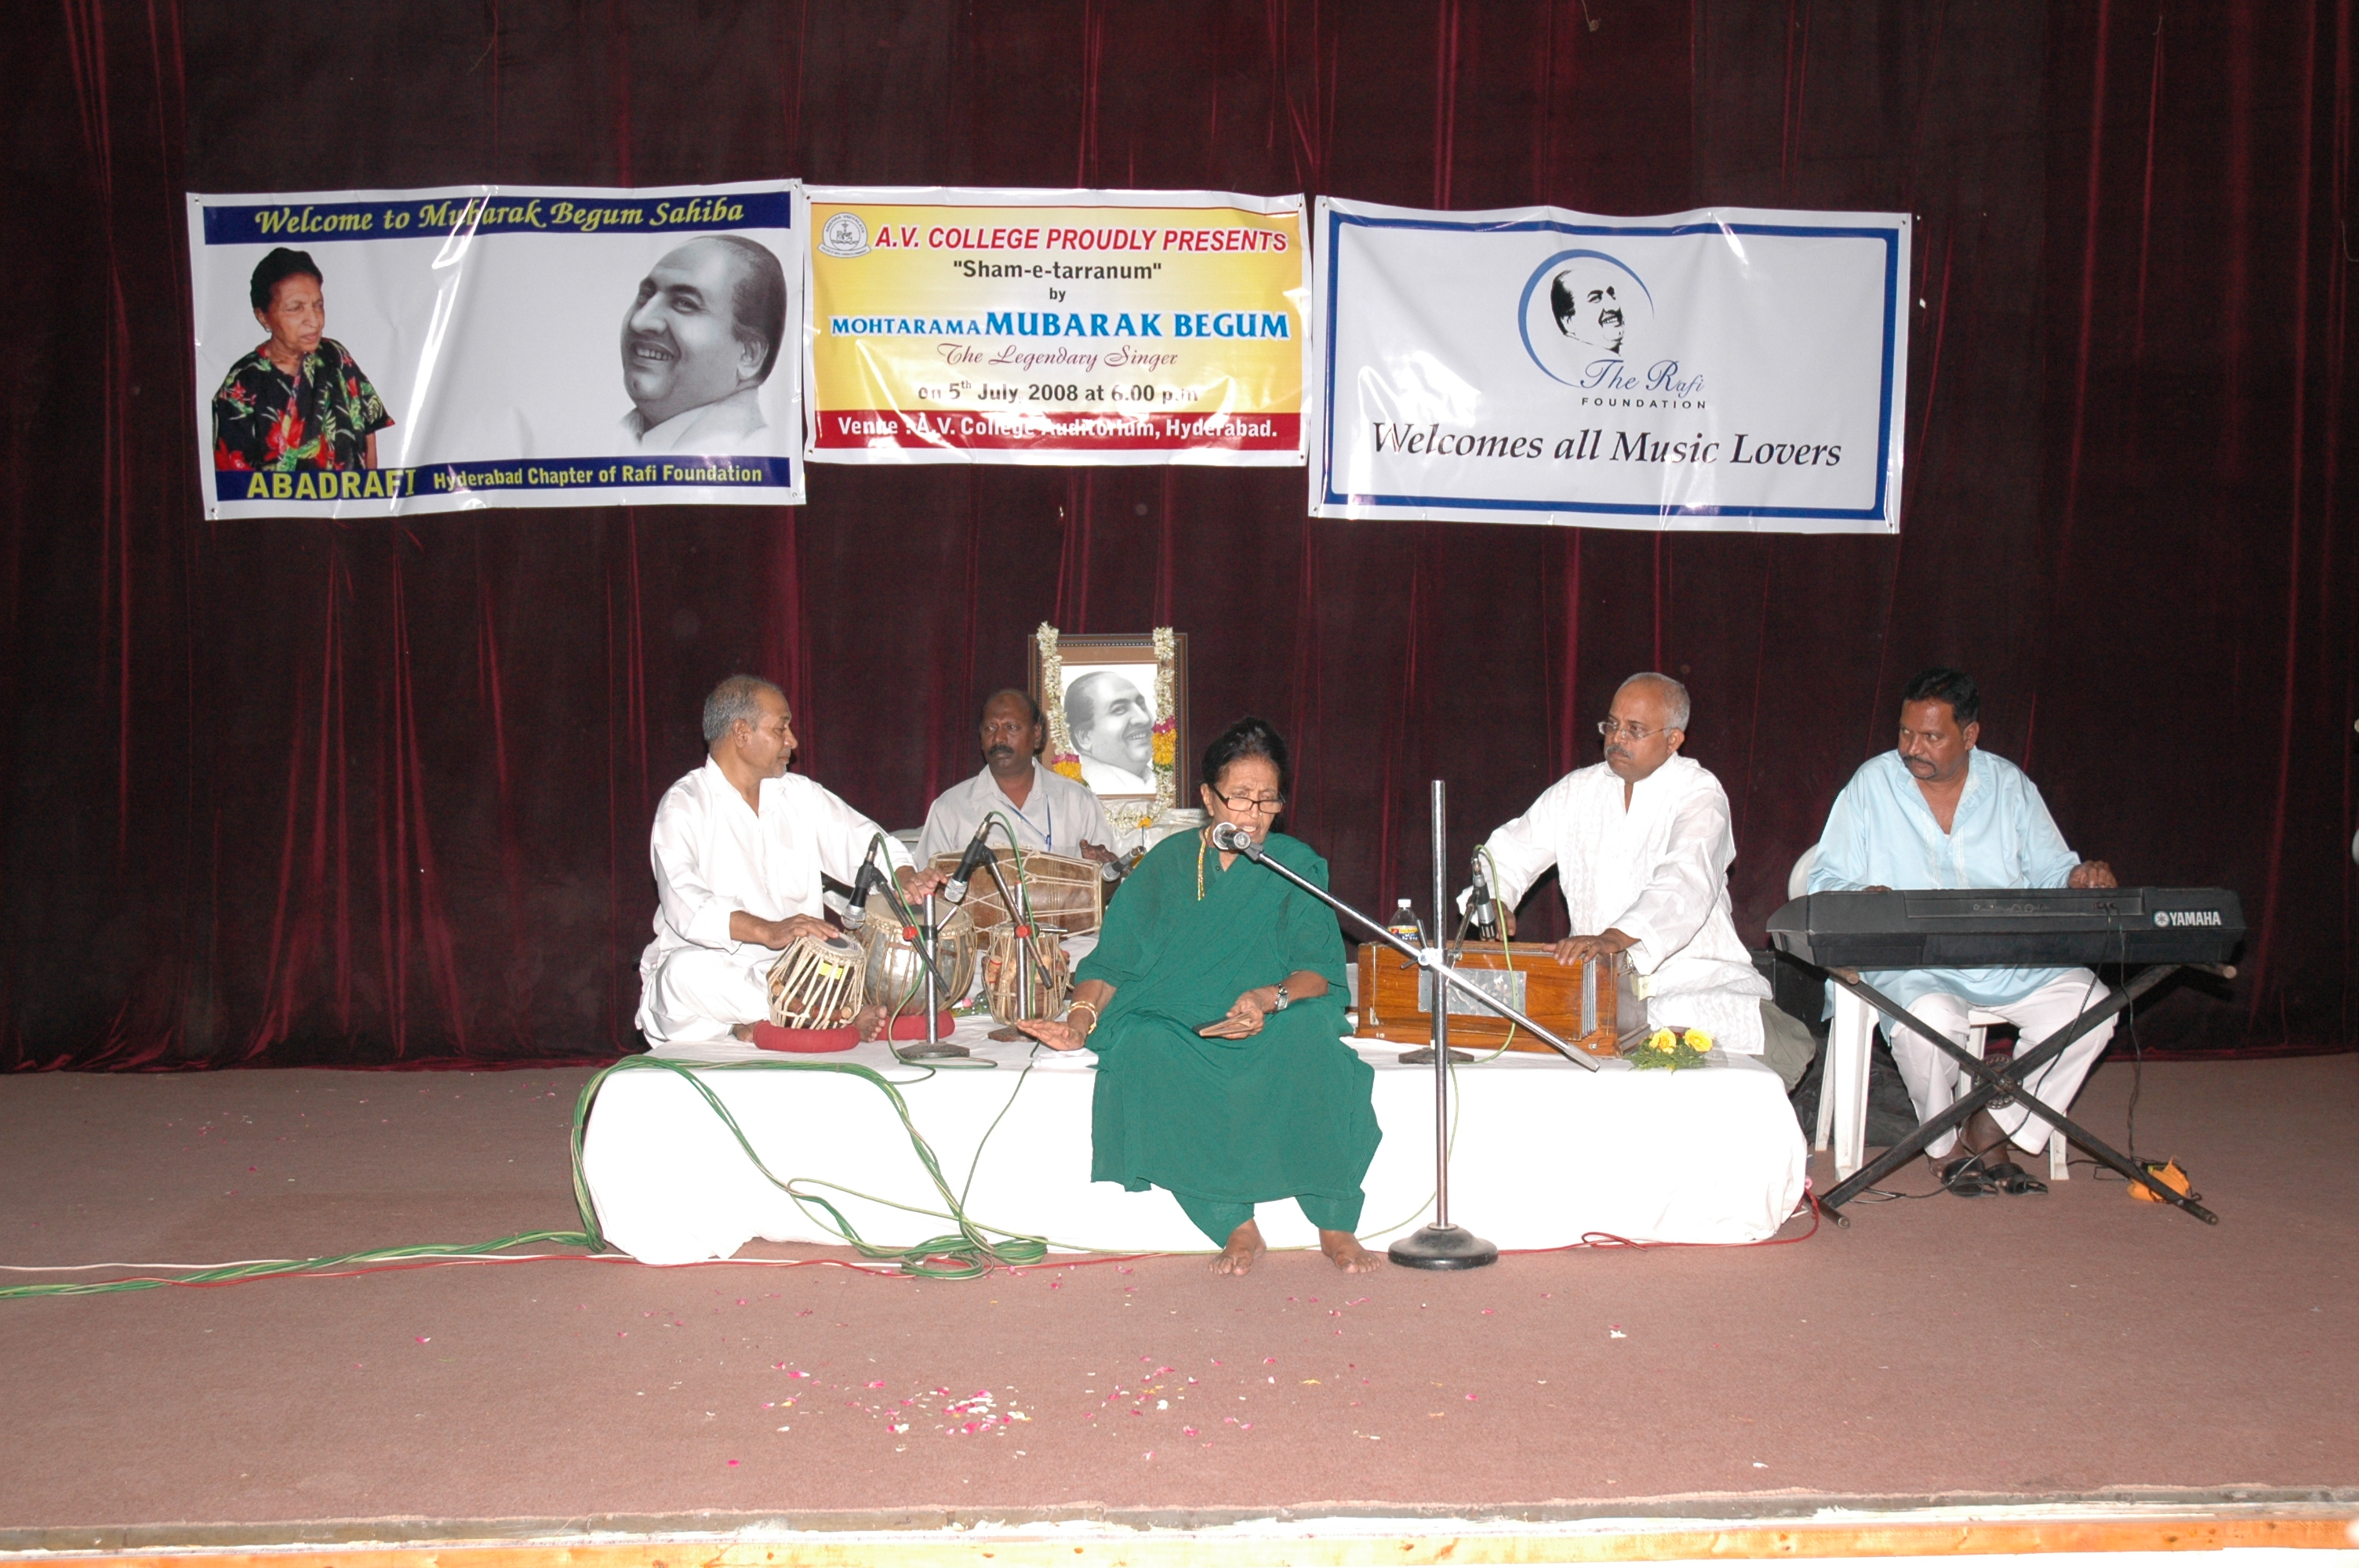 Mubarak Begum Sahiba at her vocal best, rendering songs for a musically learned audience